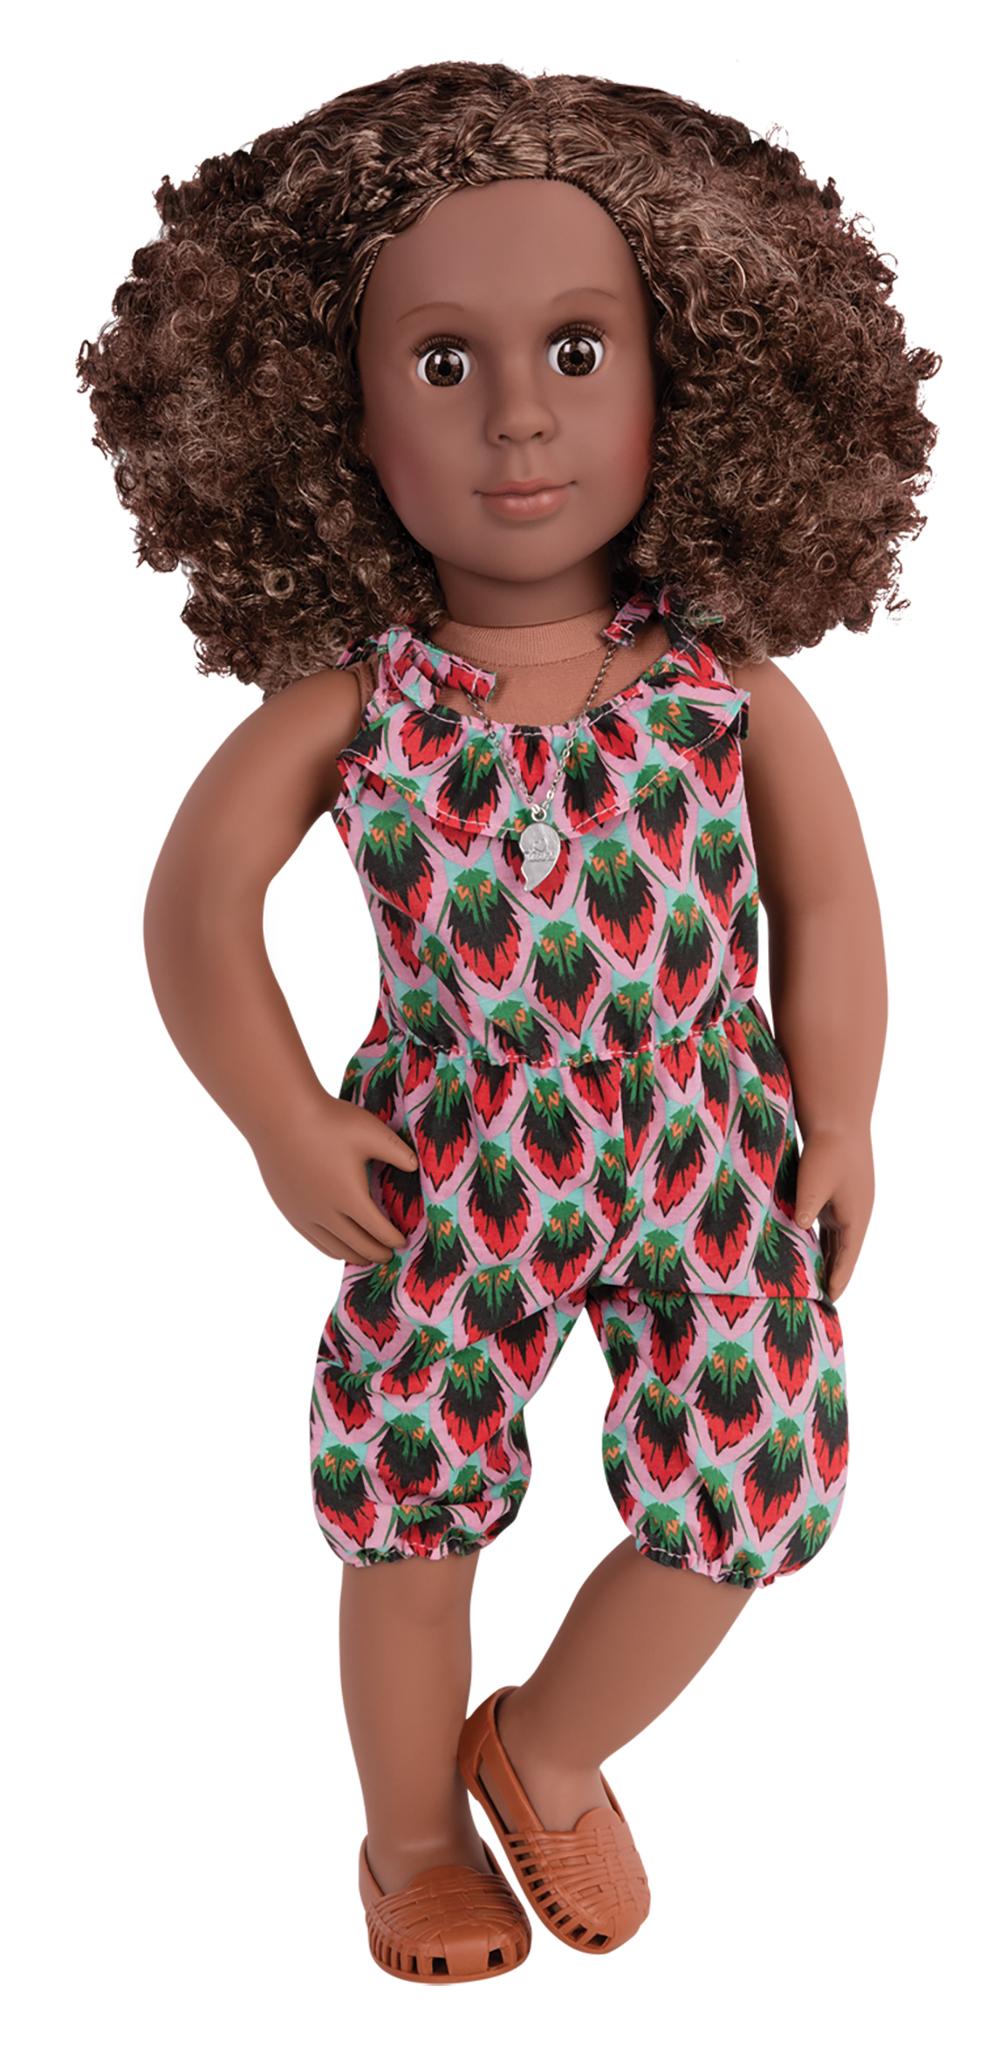 Deluxe Twin doll Denelle 18